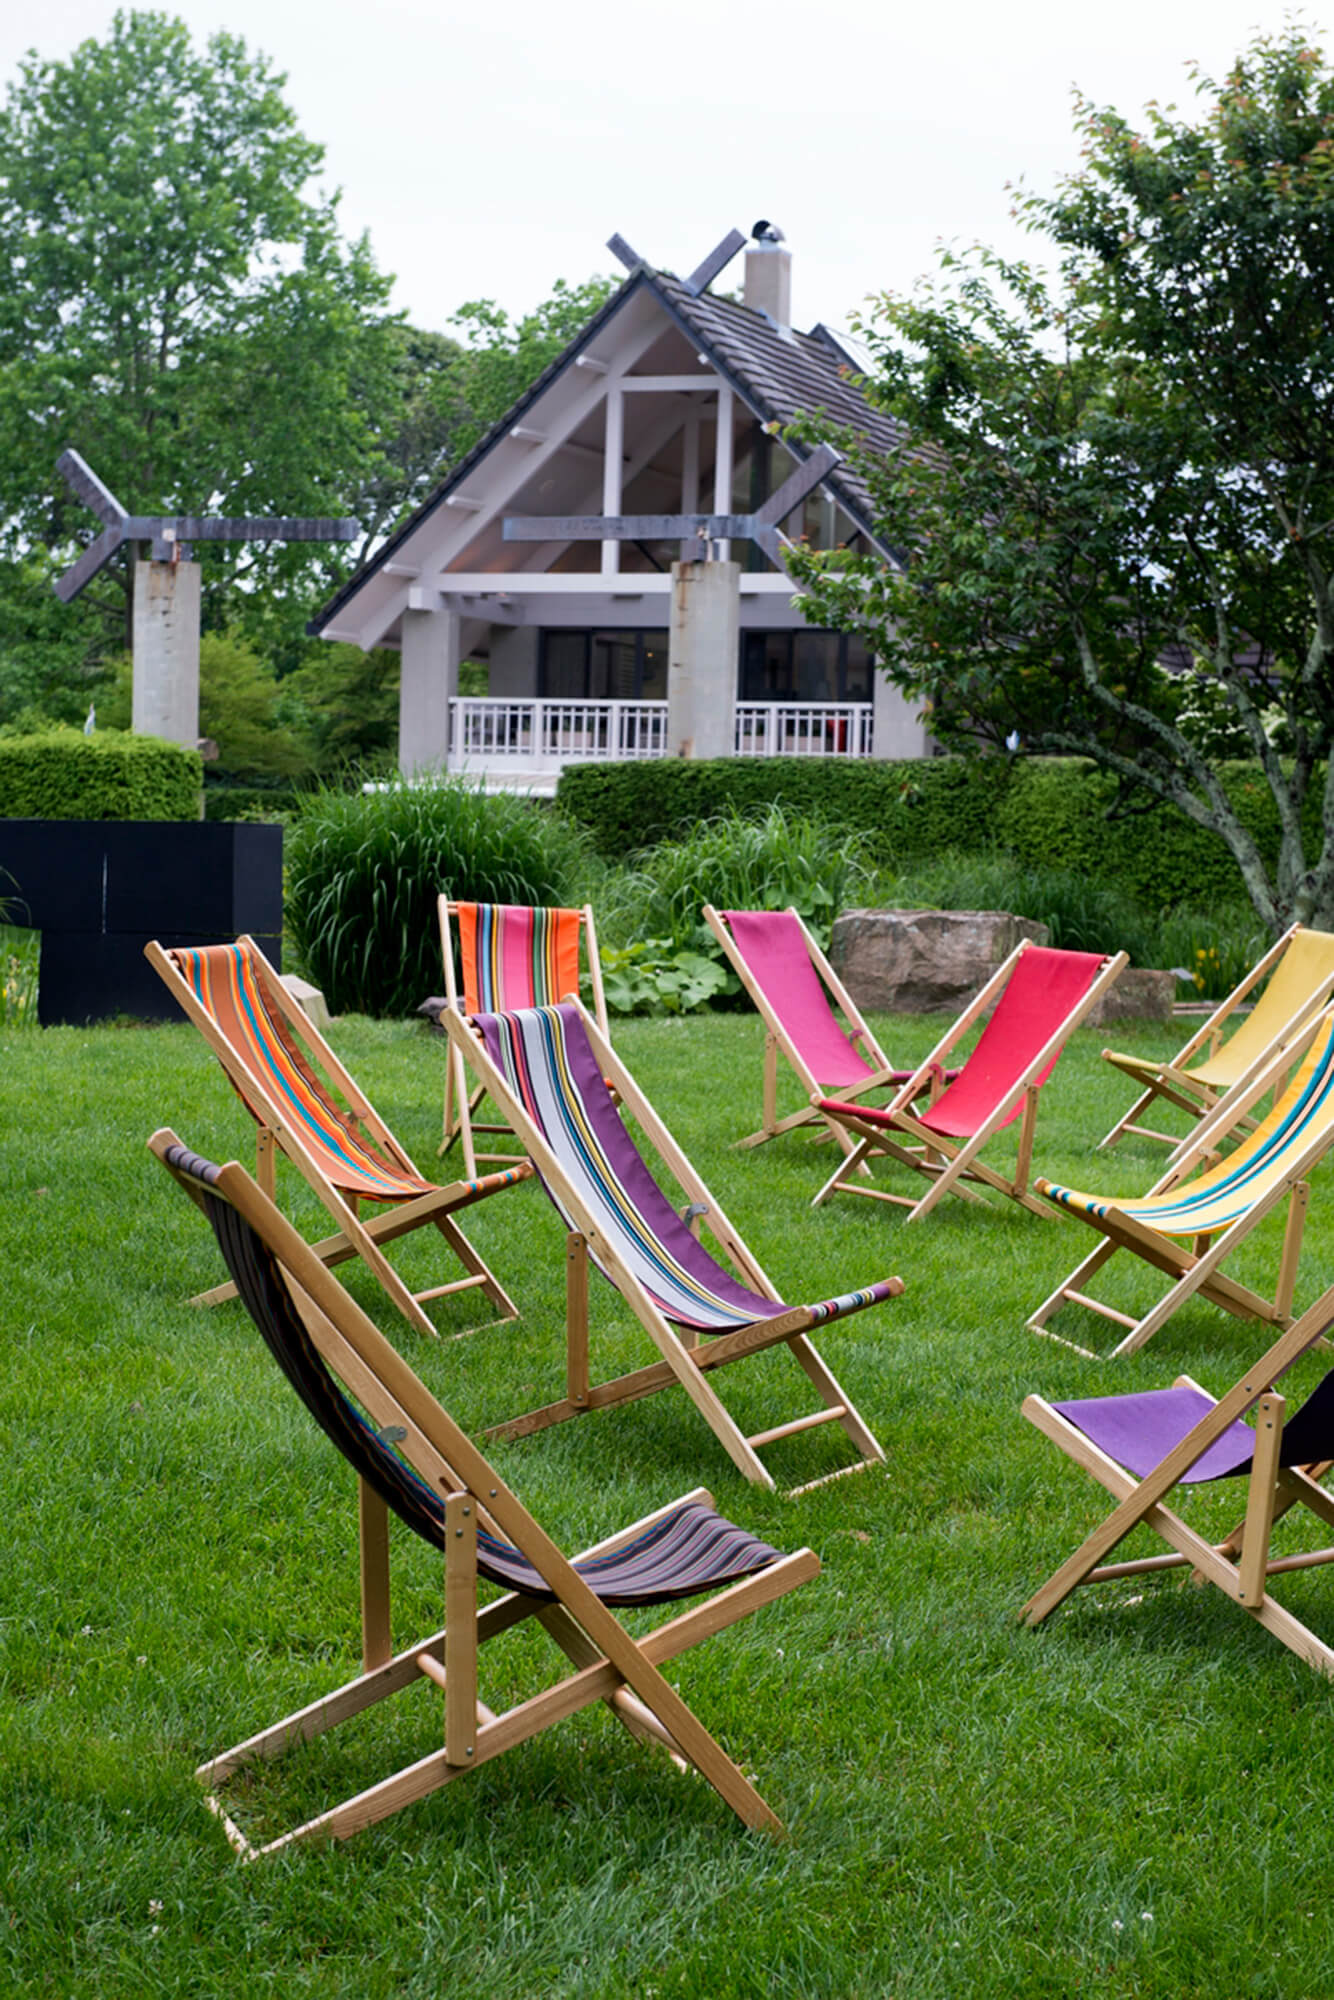 Brightly colored cabana chairs placed on the lawn